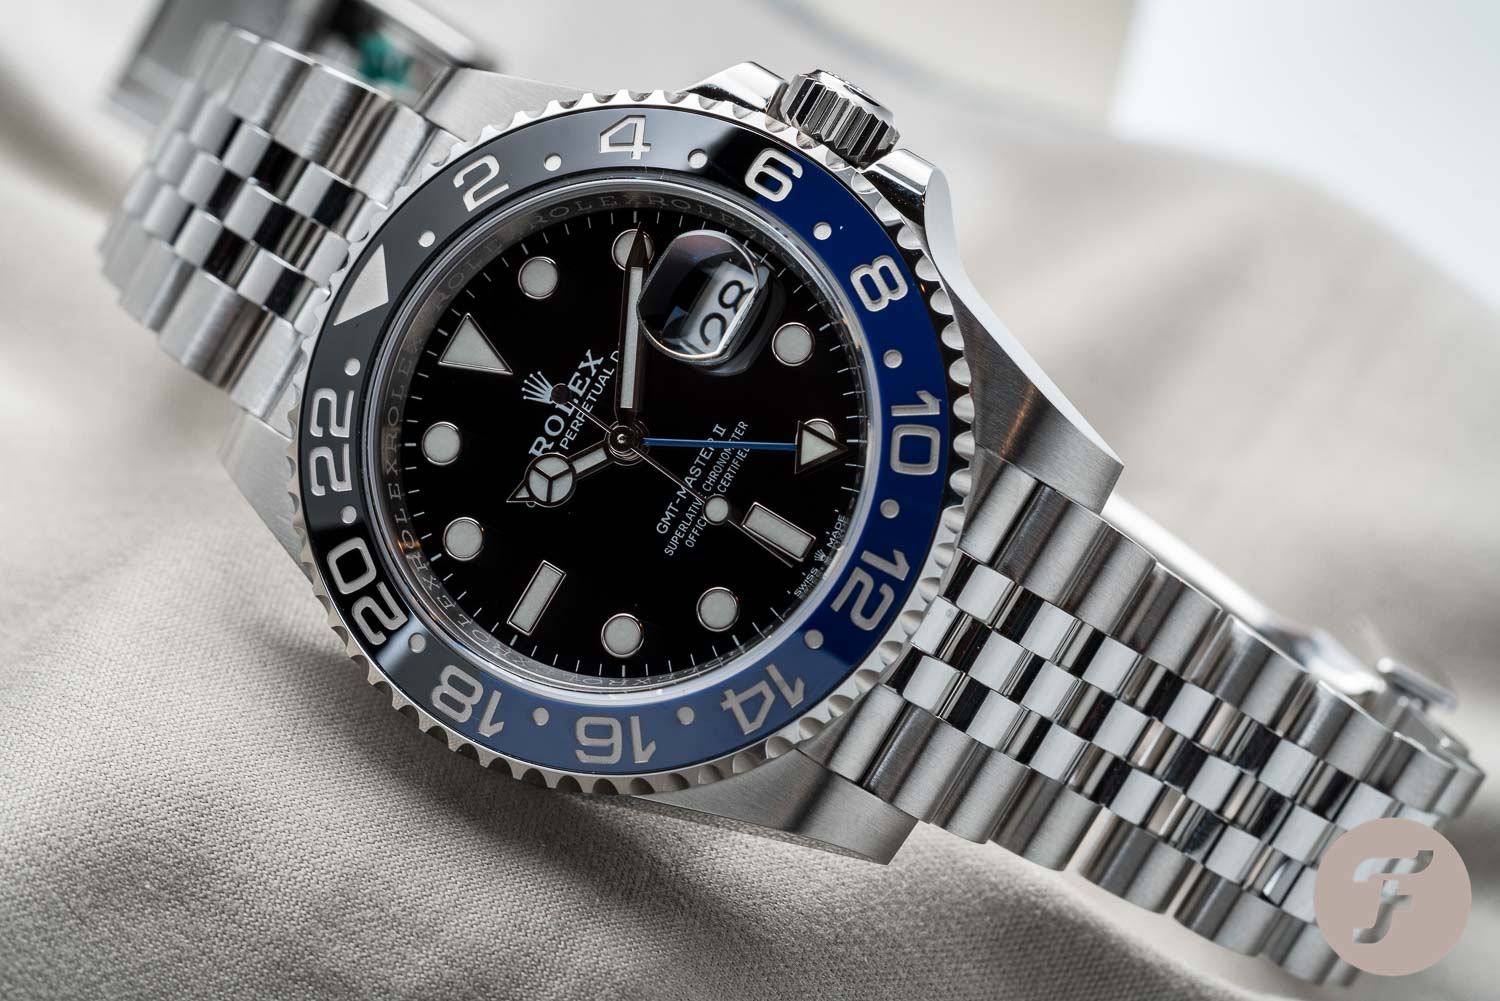 Hands On With The New Rolex Gmt Master Ii Batman On Jubilee